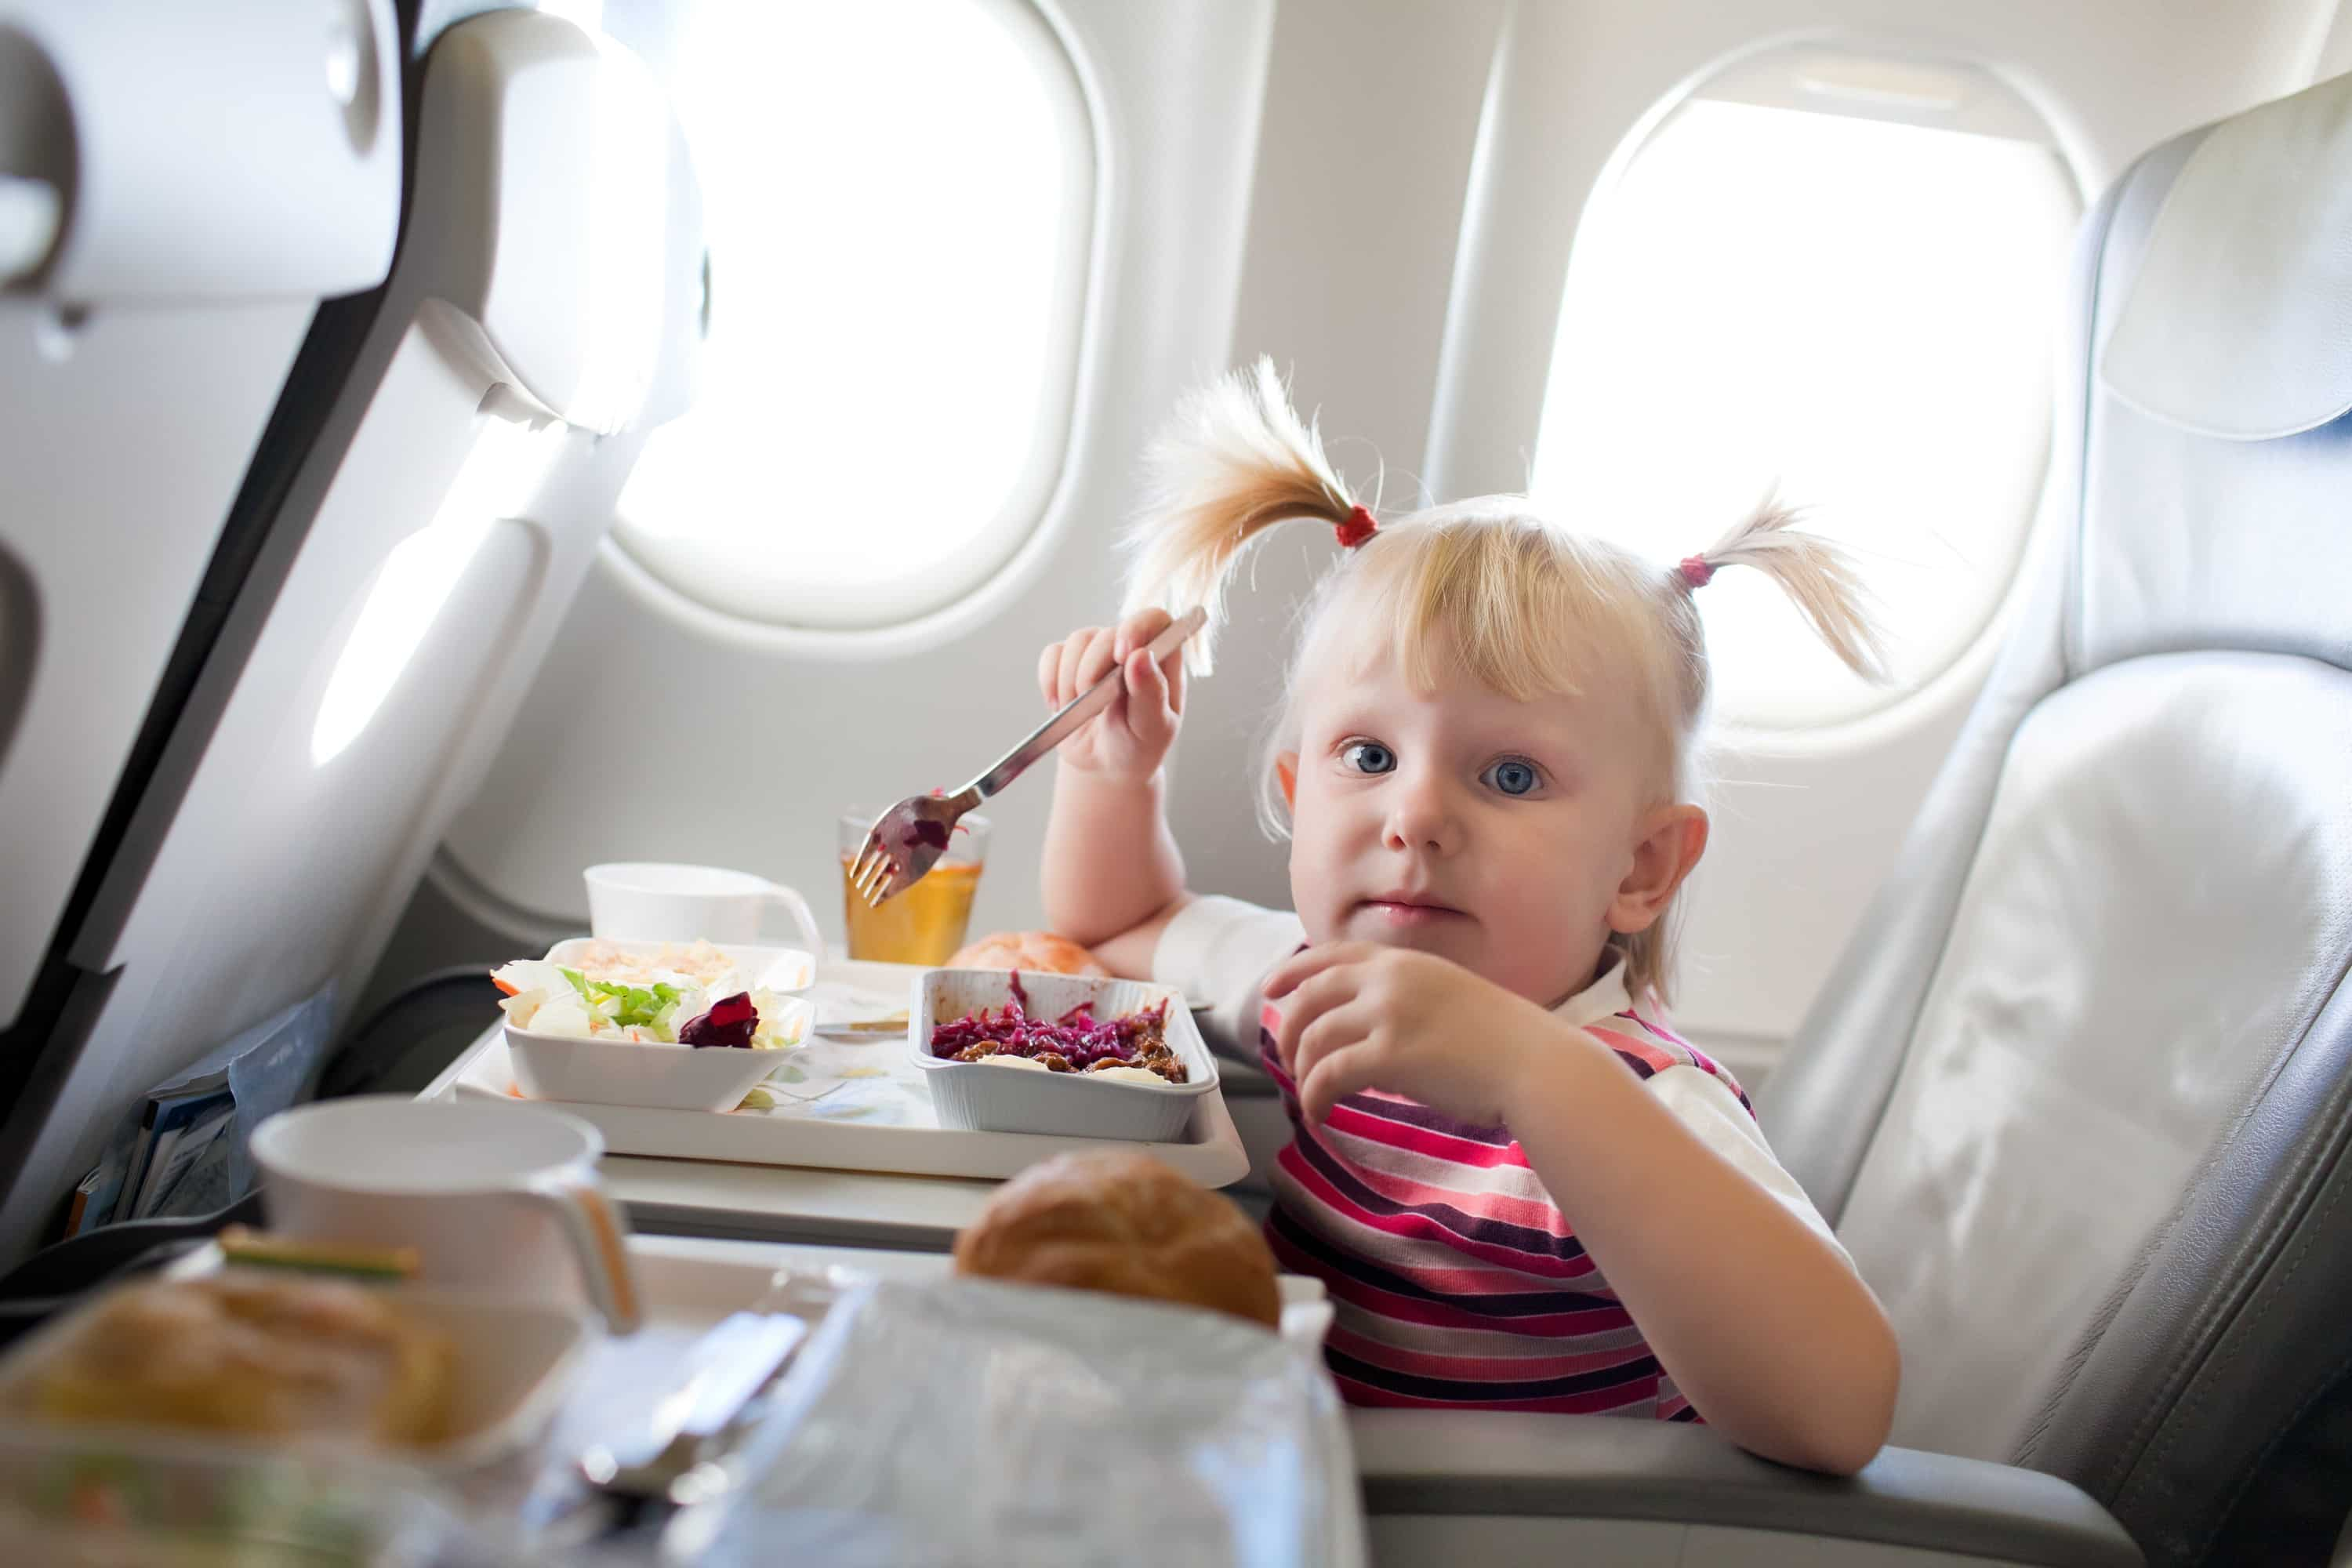 How to have a peaceful flight with young kids